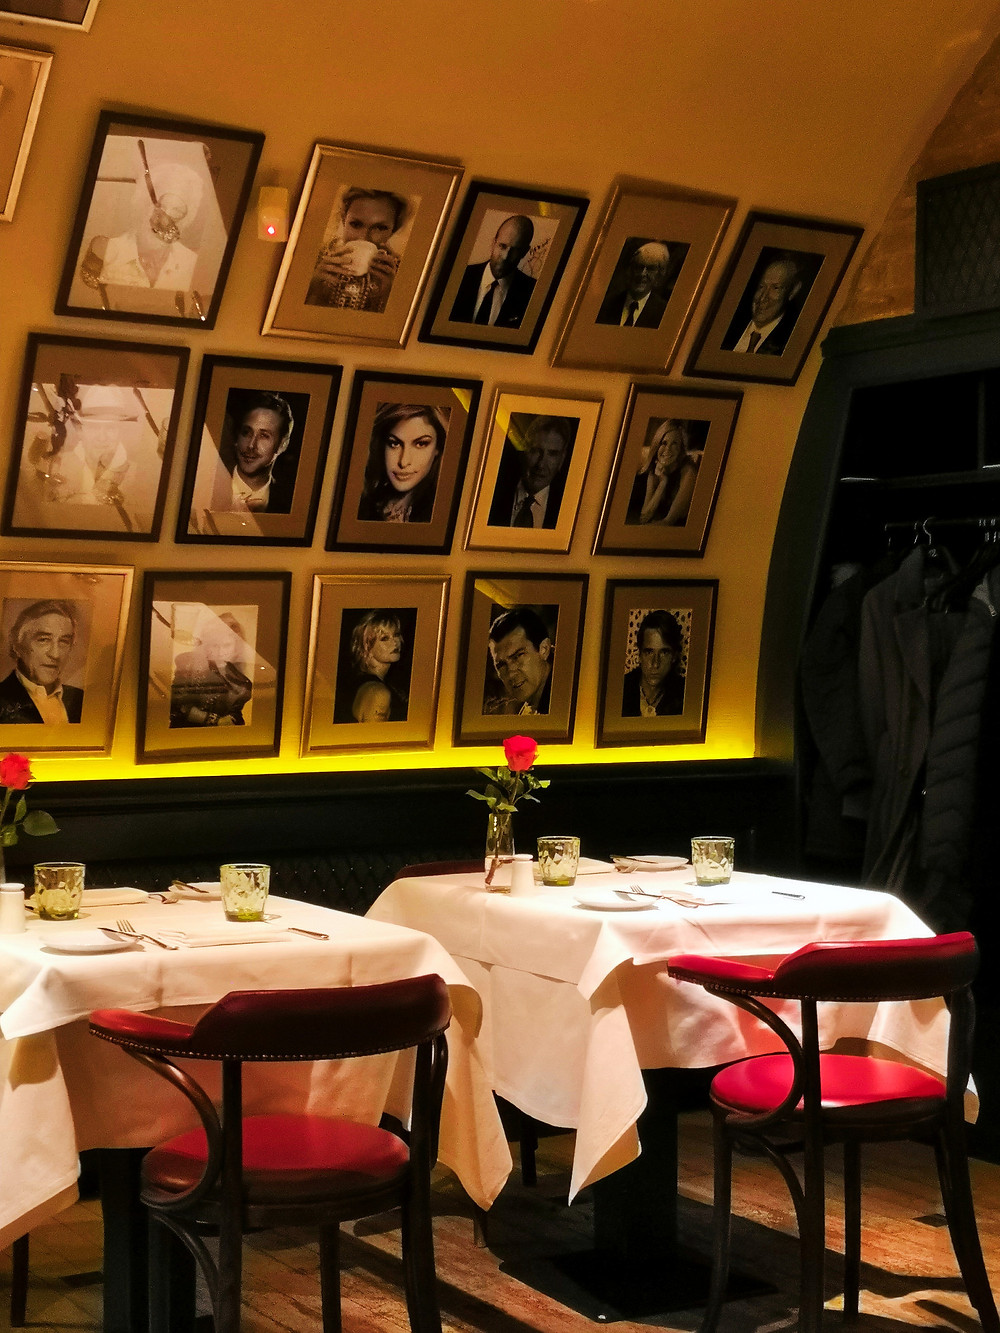 The star-studded walls of Cafe Pierrot, Budapest